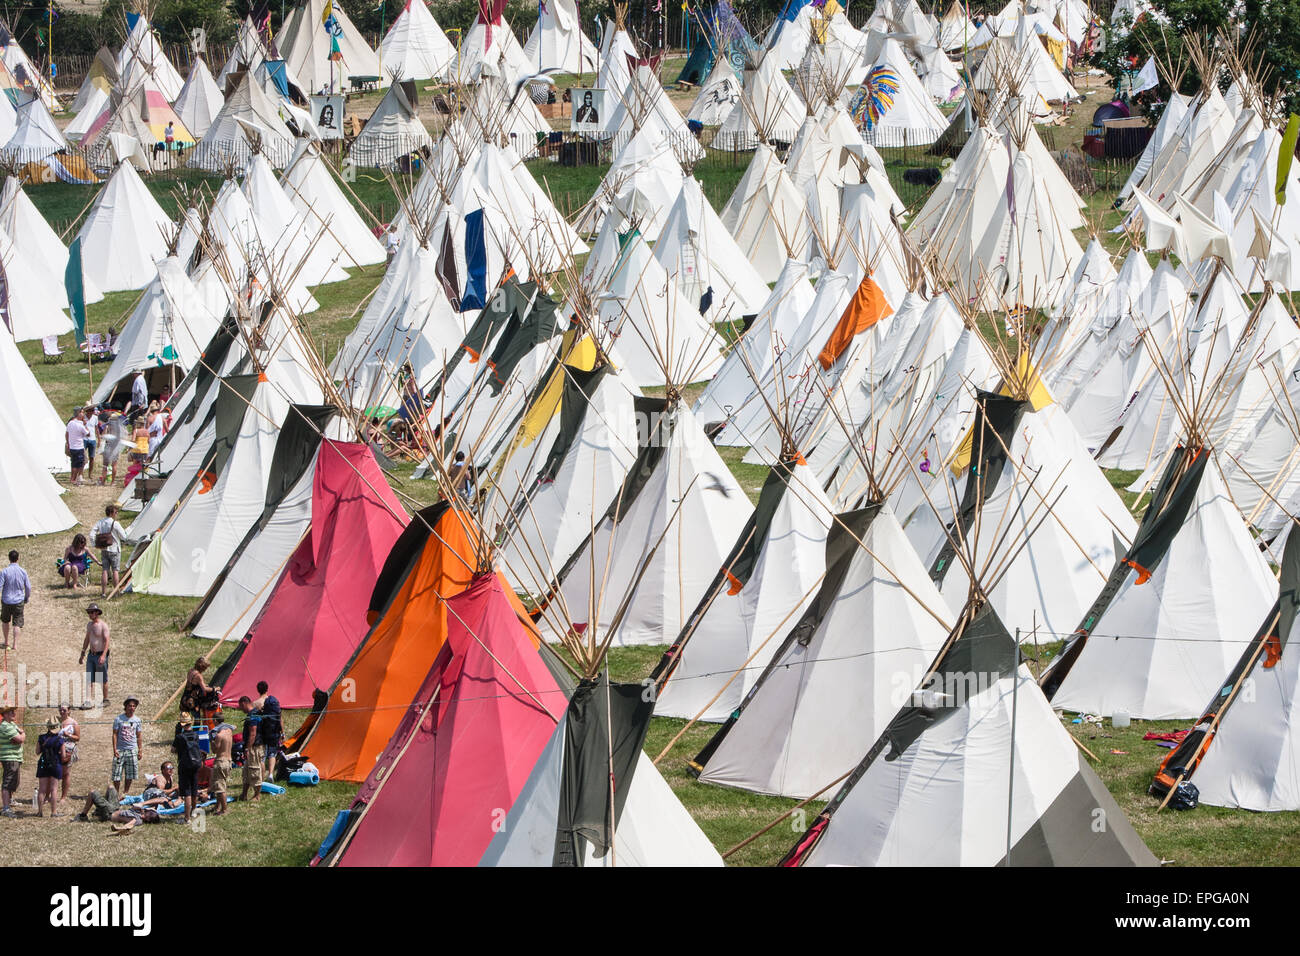 Tepee/ tipiwigwam tents available to hire at luxury tent teepee village/ Tipi Field an exclusive area at Glastonbury Festival/  Glasto & Glamping.Tepee/ tipiwigwam tents available to hire at luxury ...